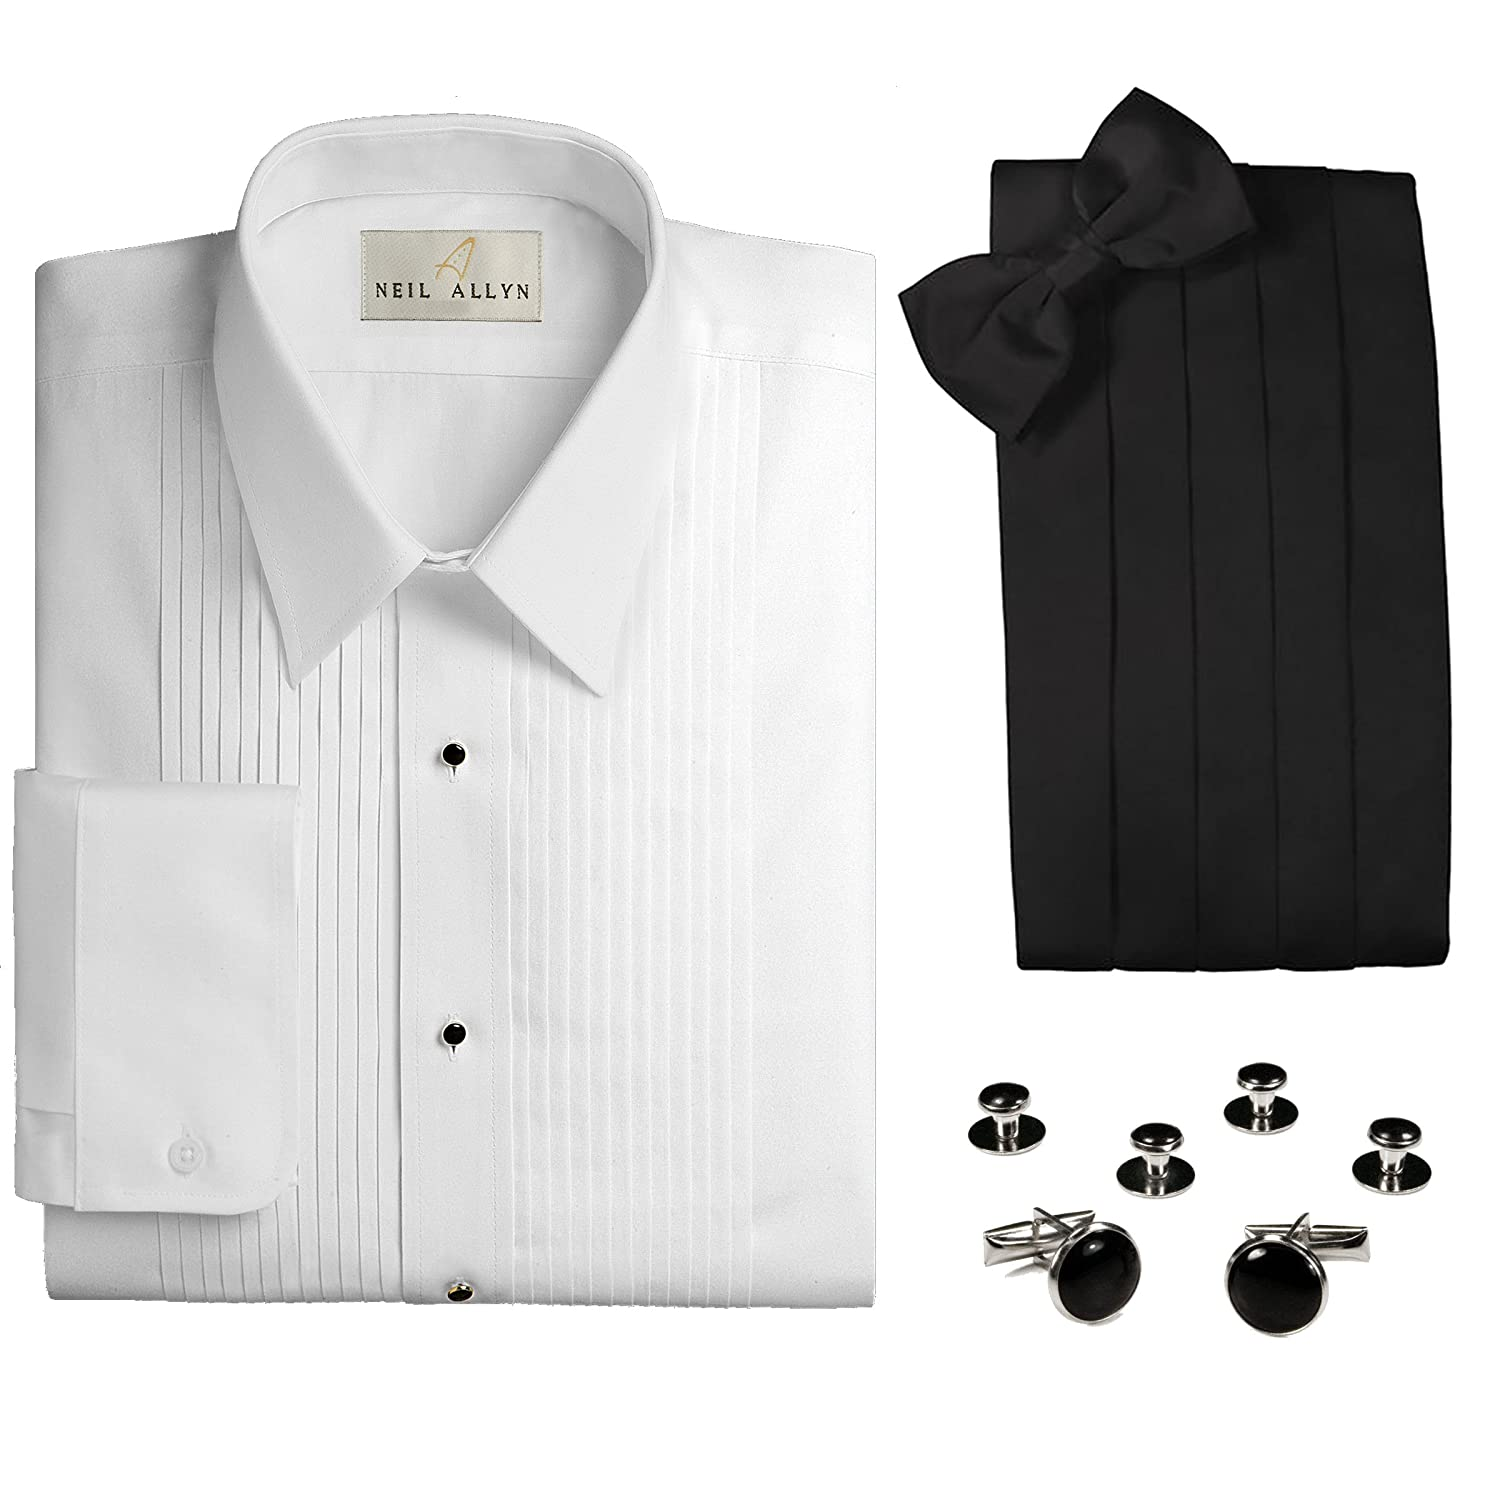 Slim Fit Laydown Collar Tuxedo Shirt, Cummerbund, Bow Tie, Cufflinks & Studs